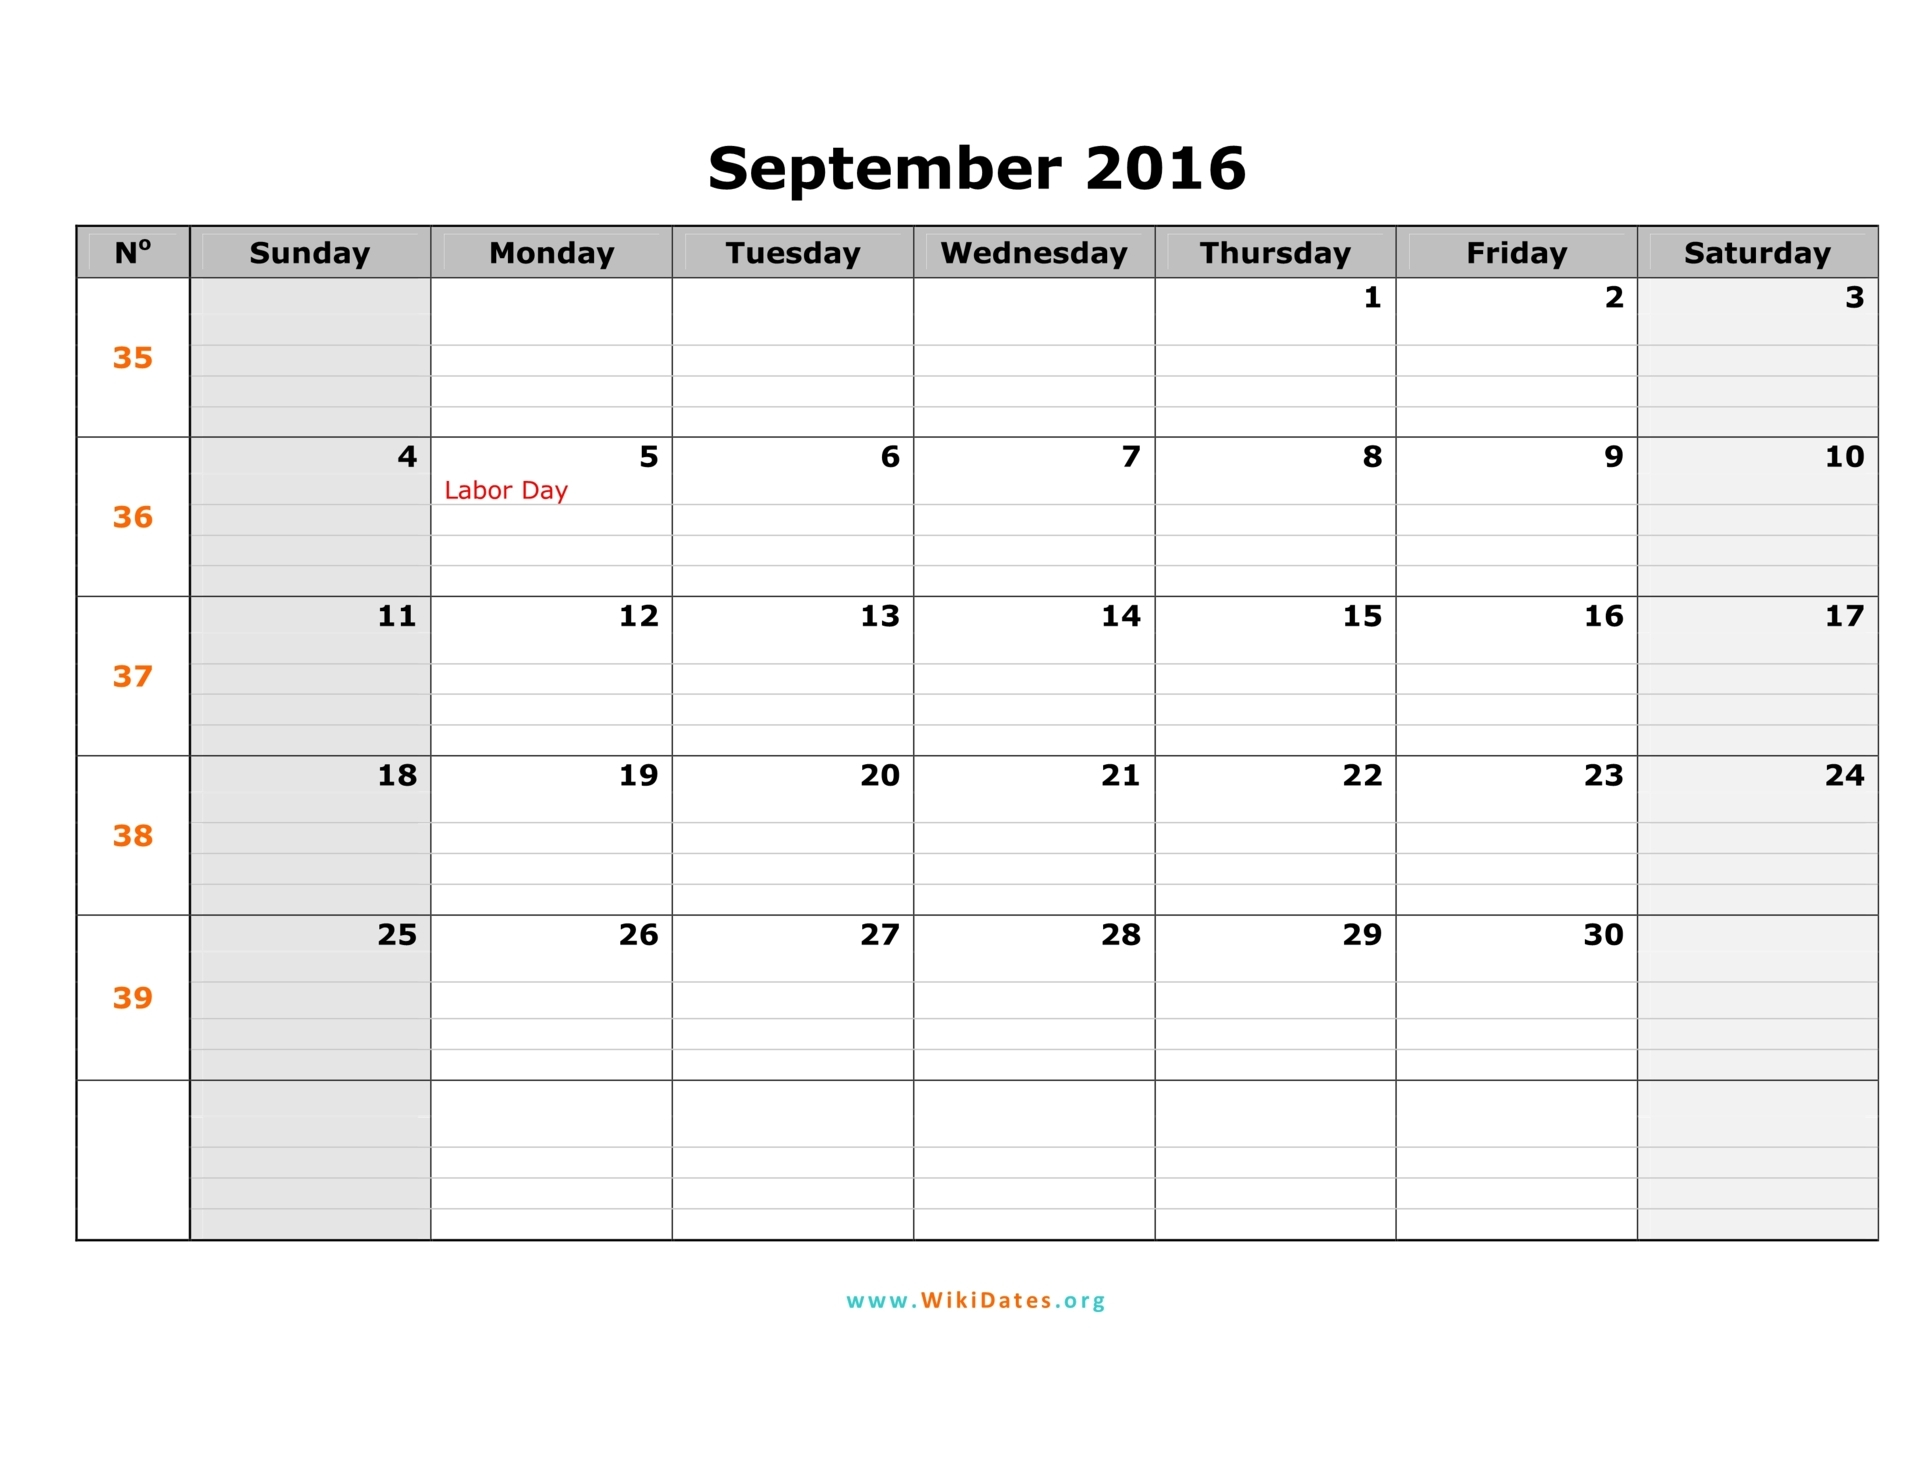 September 2016 Printable Calendar, September 2016 Calendar PDF, September 2016 Calendar Excel, September 2016 Calendar Word